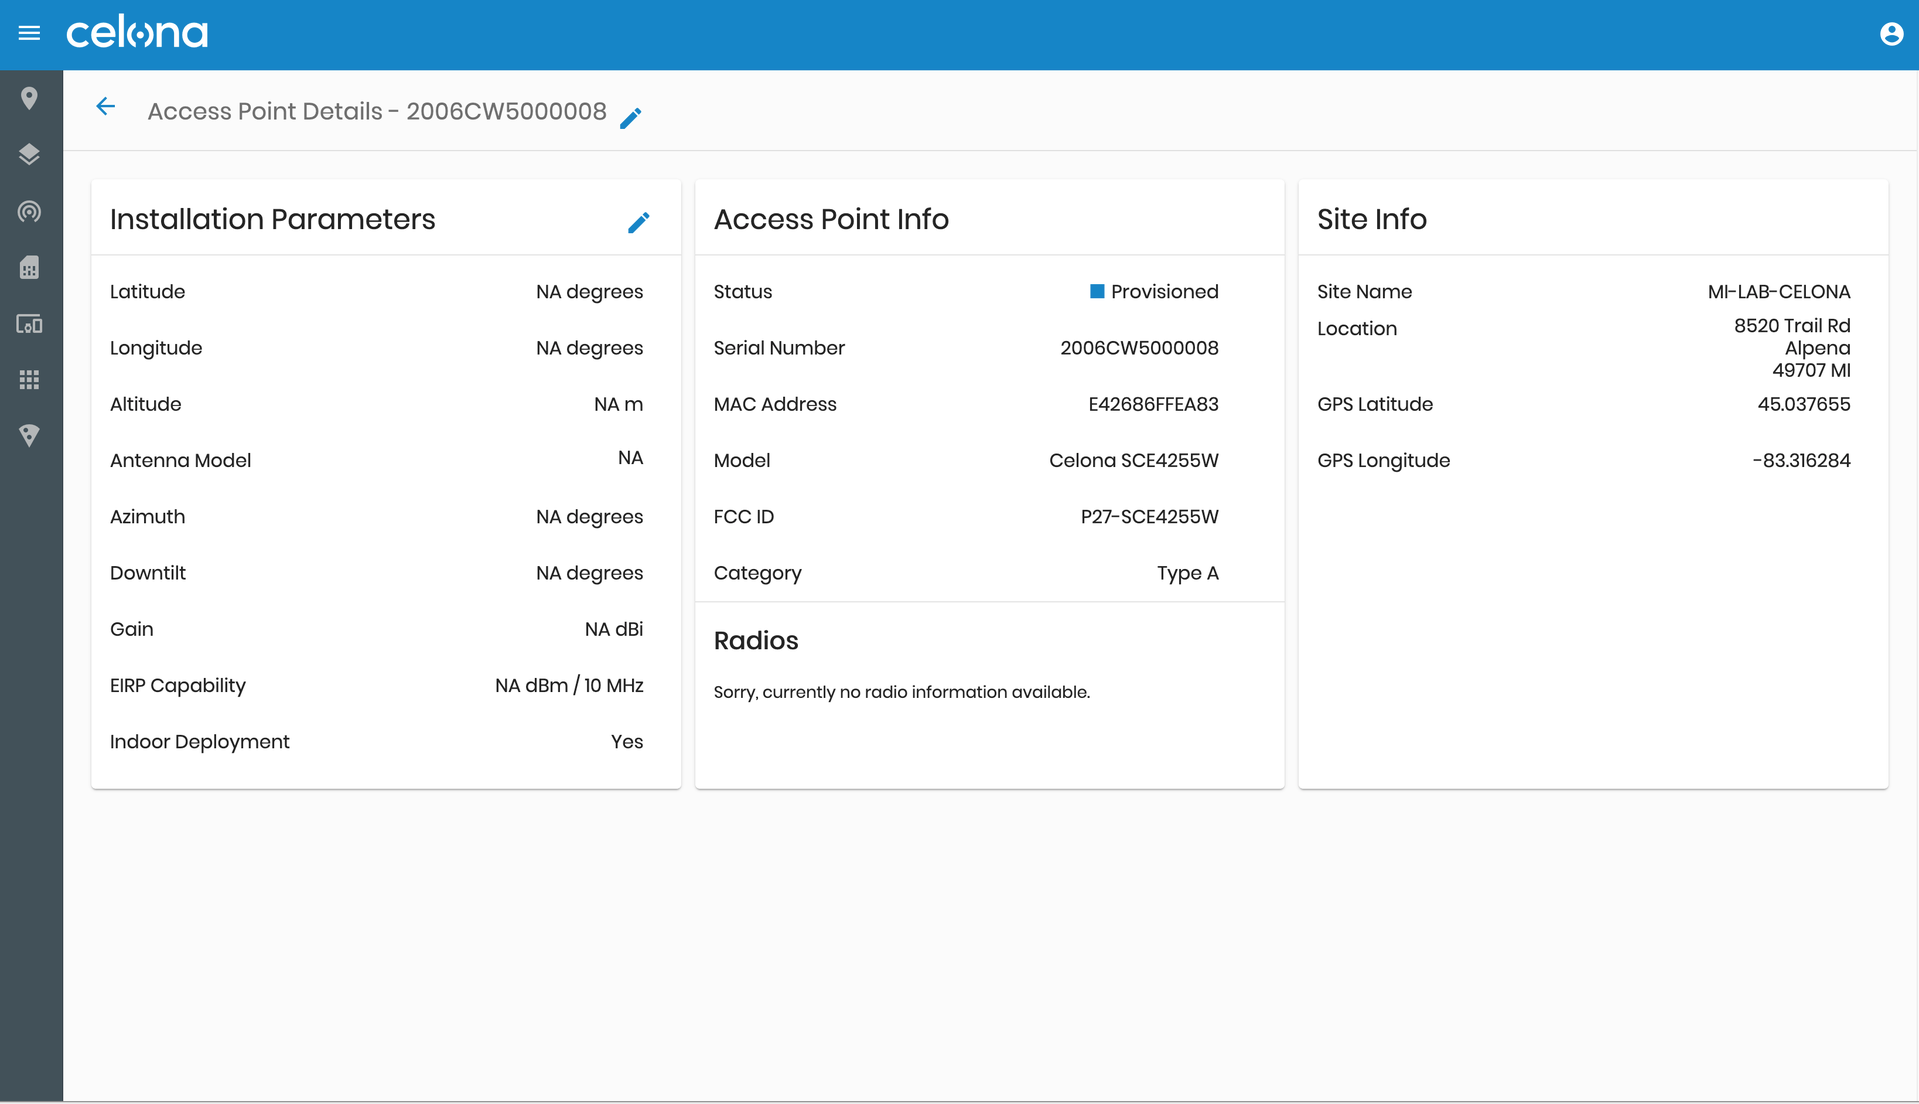 Celona Access Point details in the Orchestrator